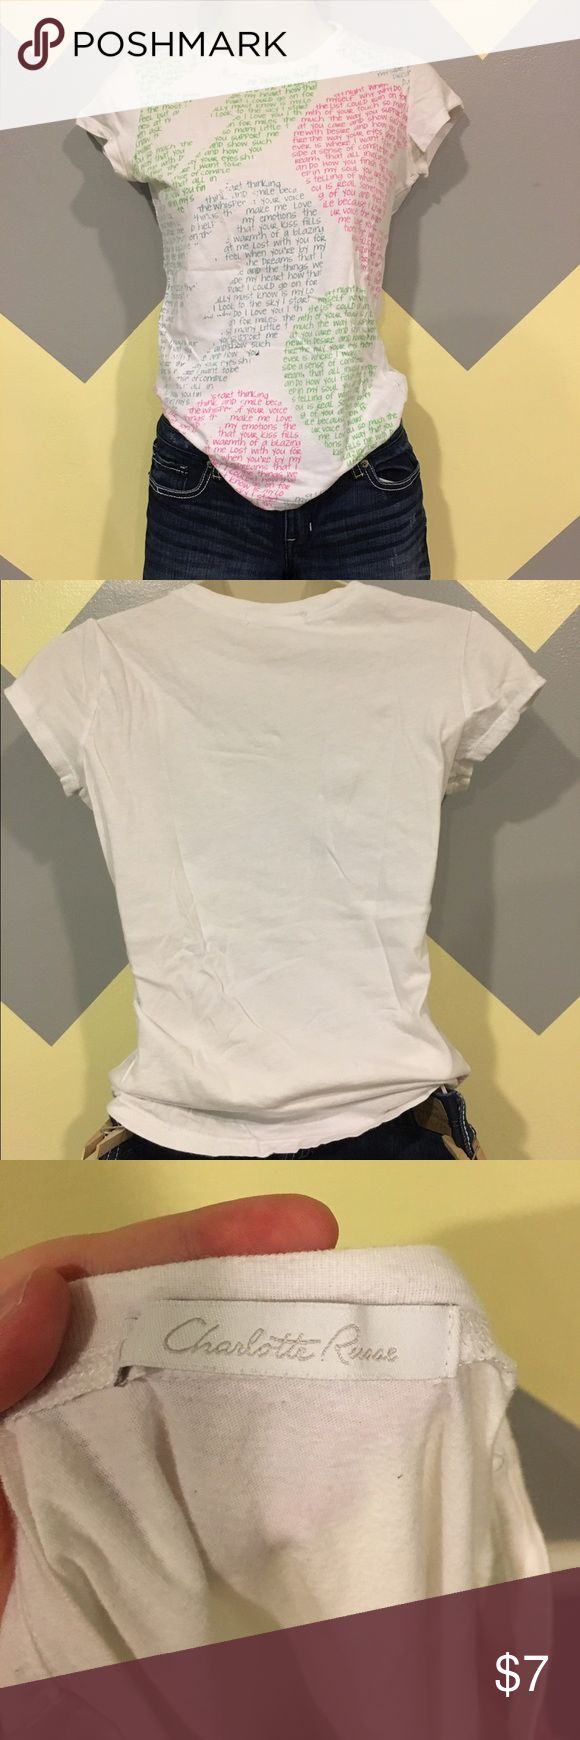 🌸Broken Heart Tee - Charlotte Russe Smoke Free. Offers always welcome. Questions answered within 24 hours. 💕 Charlotte Russe Tops Tees - Short Sleeve